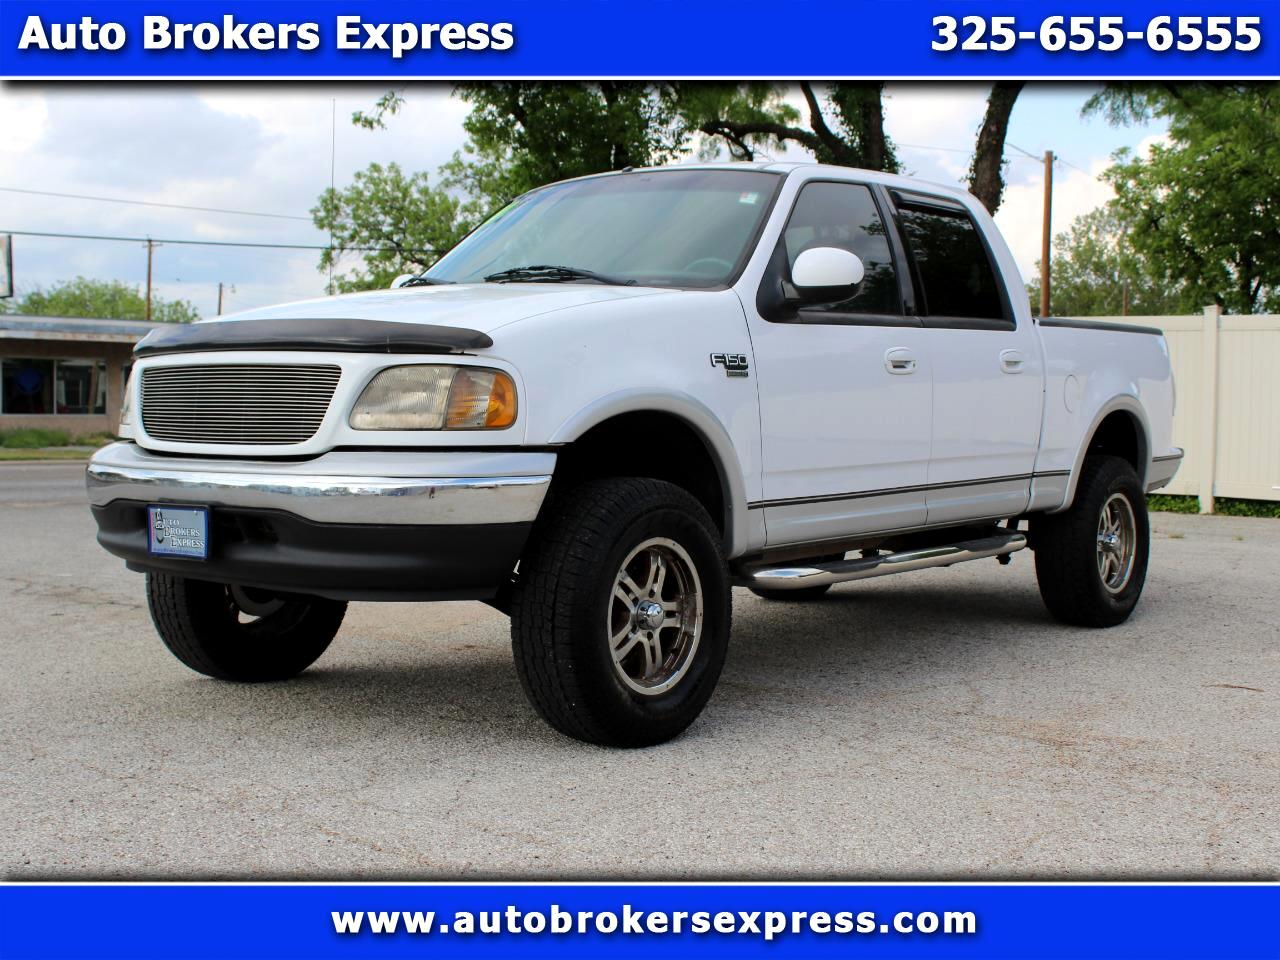 2001 Ford F-150 XLT SuperCrew 2WD